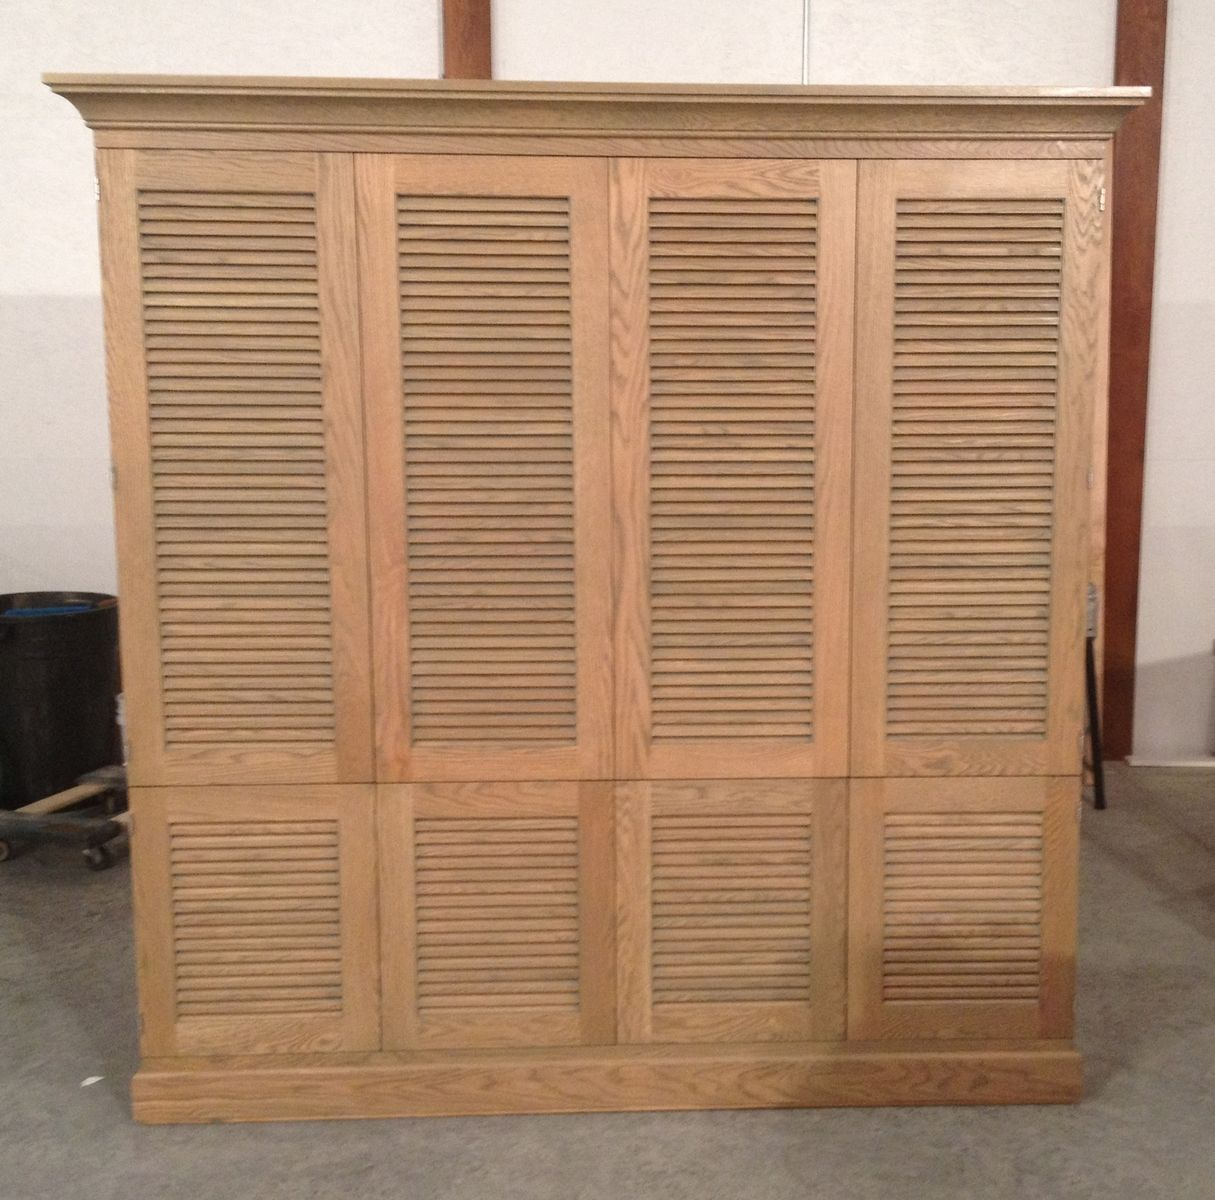 Hand made entertaiment cabinet with louvered doors by j s woodworking - Custom made cabinet ...